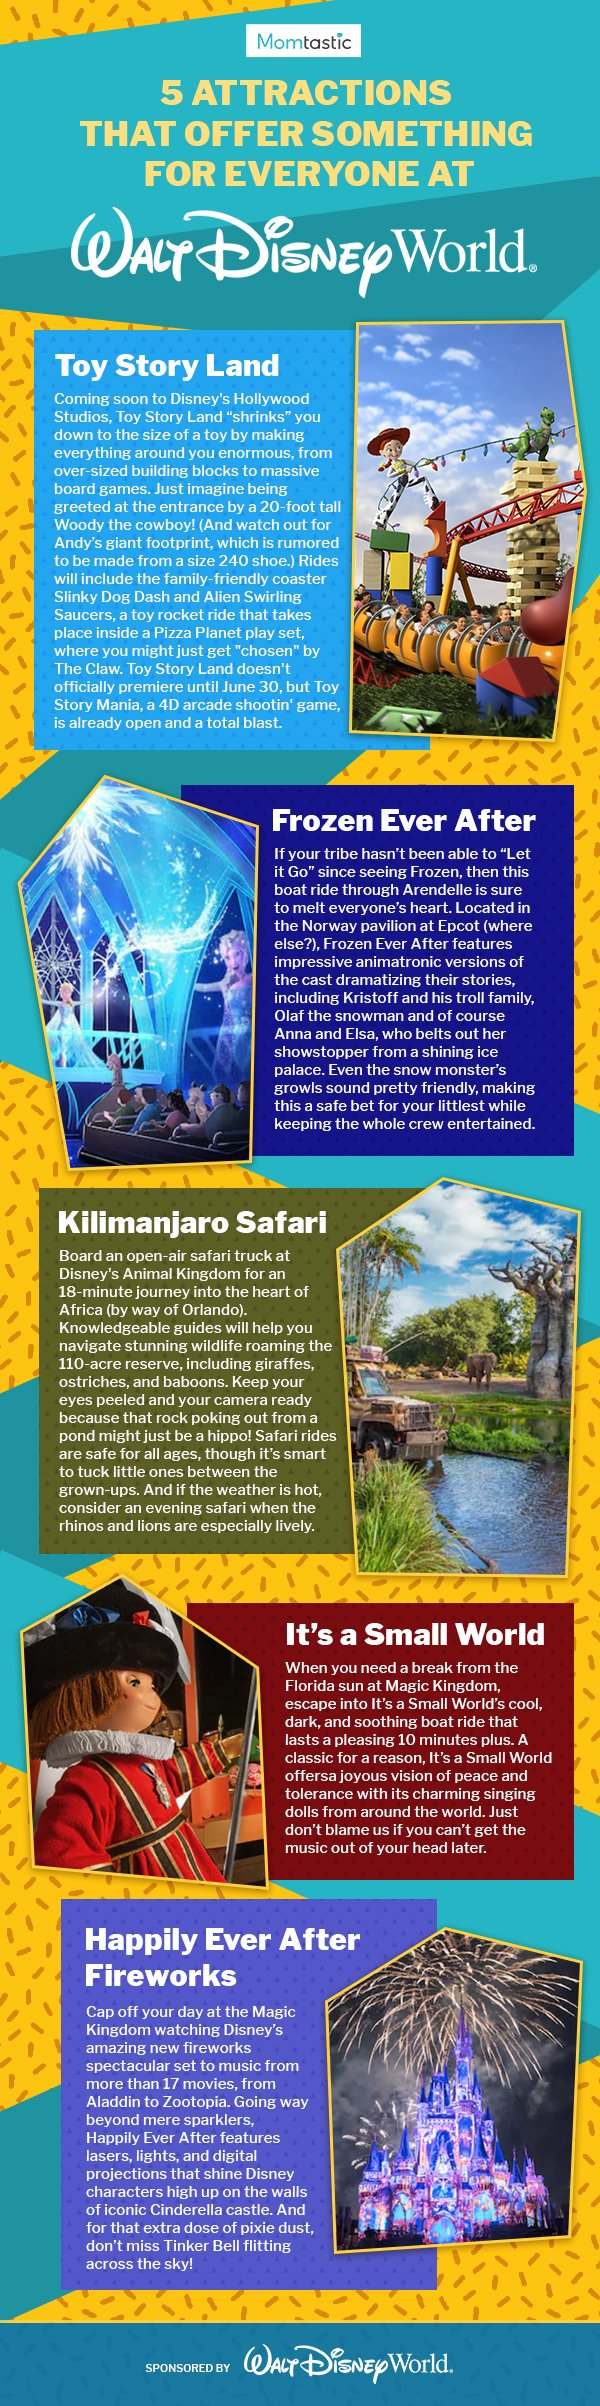 5 Attractions That Offer Something for Everyone at Walt Disney World